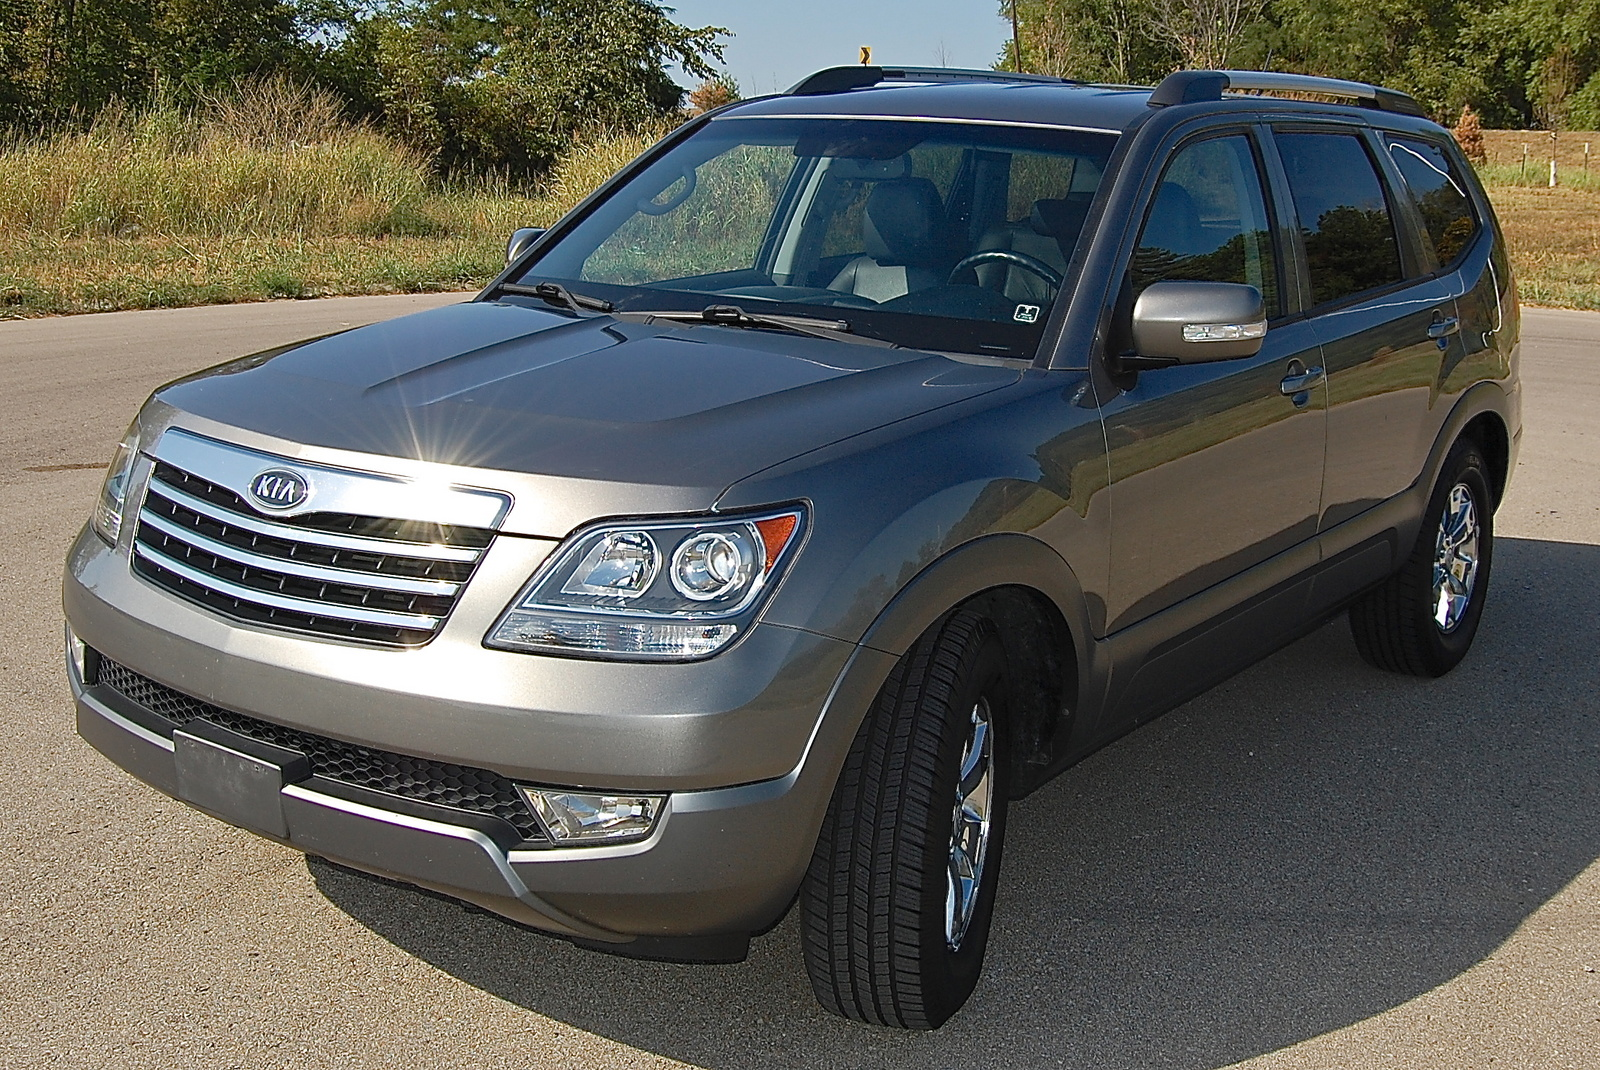 2009 kia borrego 3 8 4wd related infomation specifications. Black Bedroom Furniture Sets. Home Design Ideas